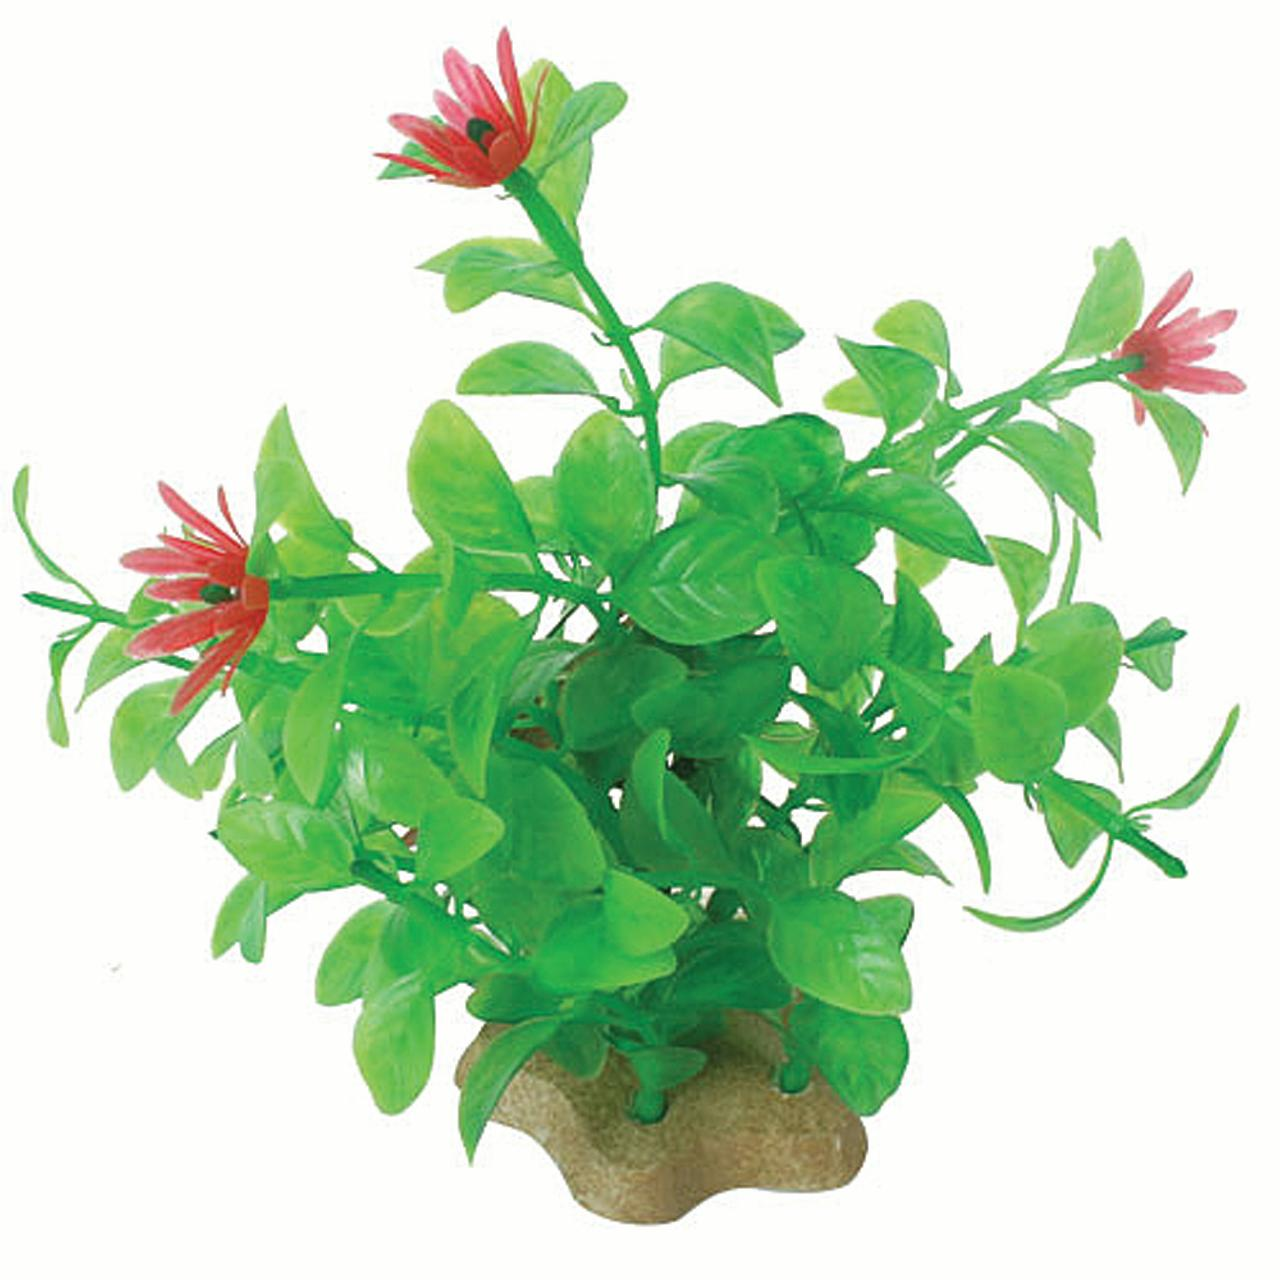 NATURAL ELEMENTS BLOOMING LUDWIGIA PLANT